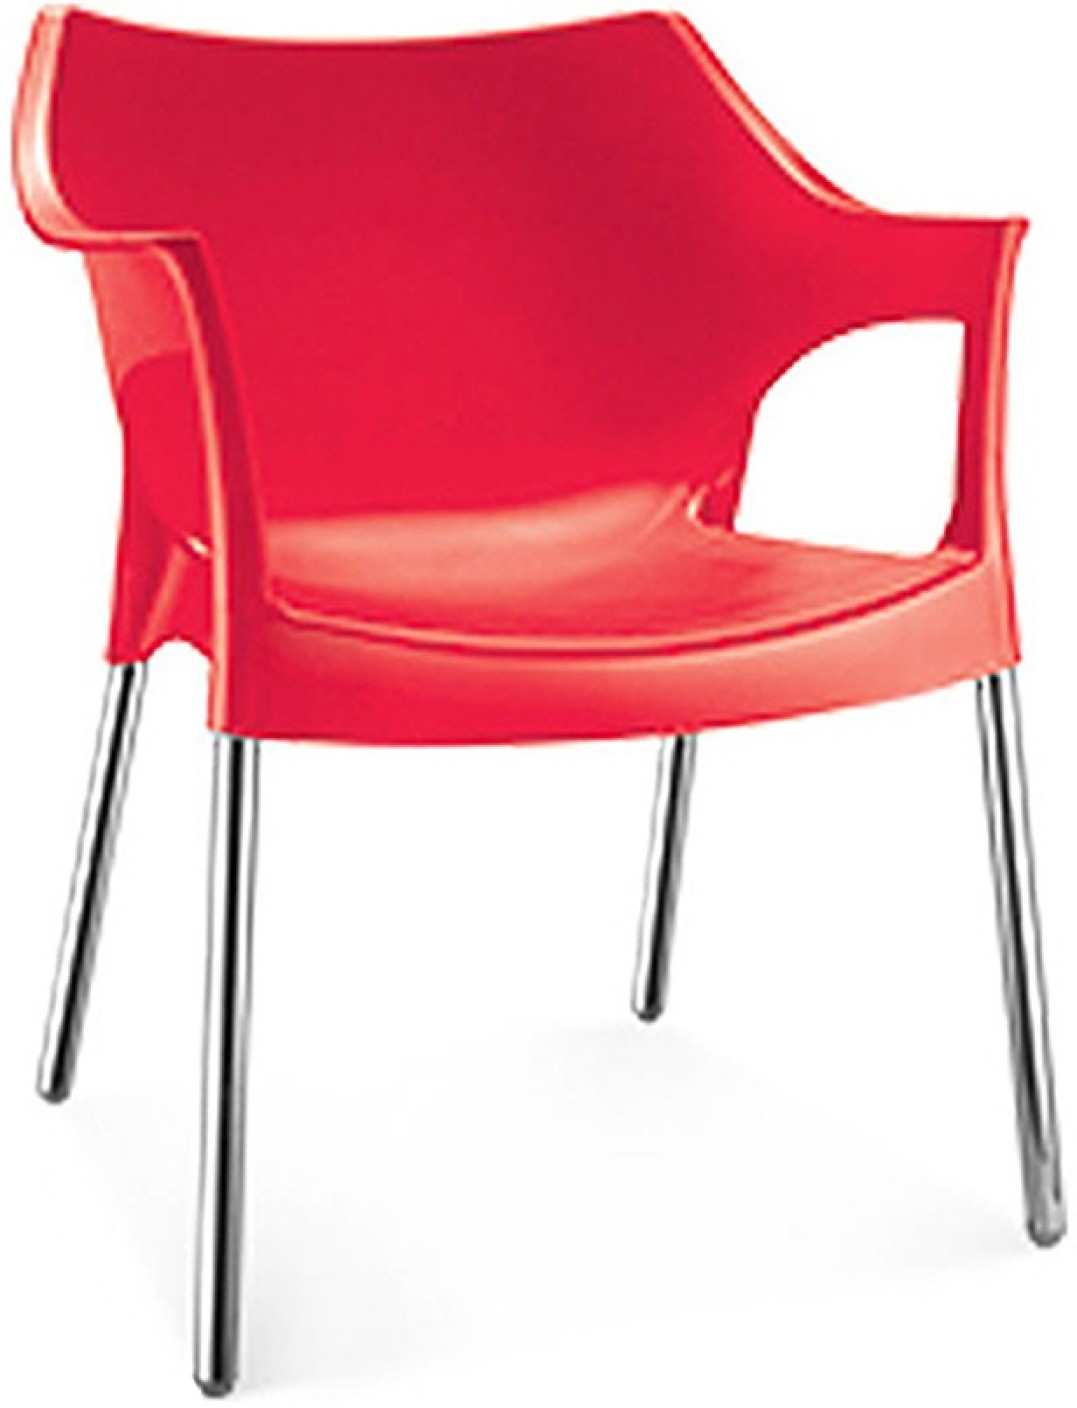 Nilkamal plastic chair - On Offer